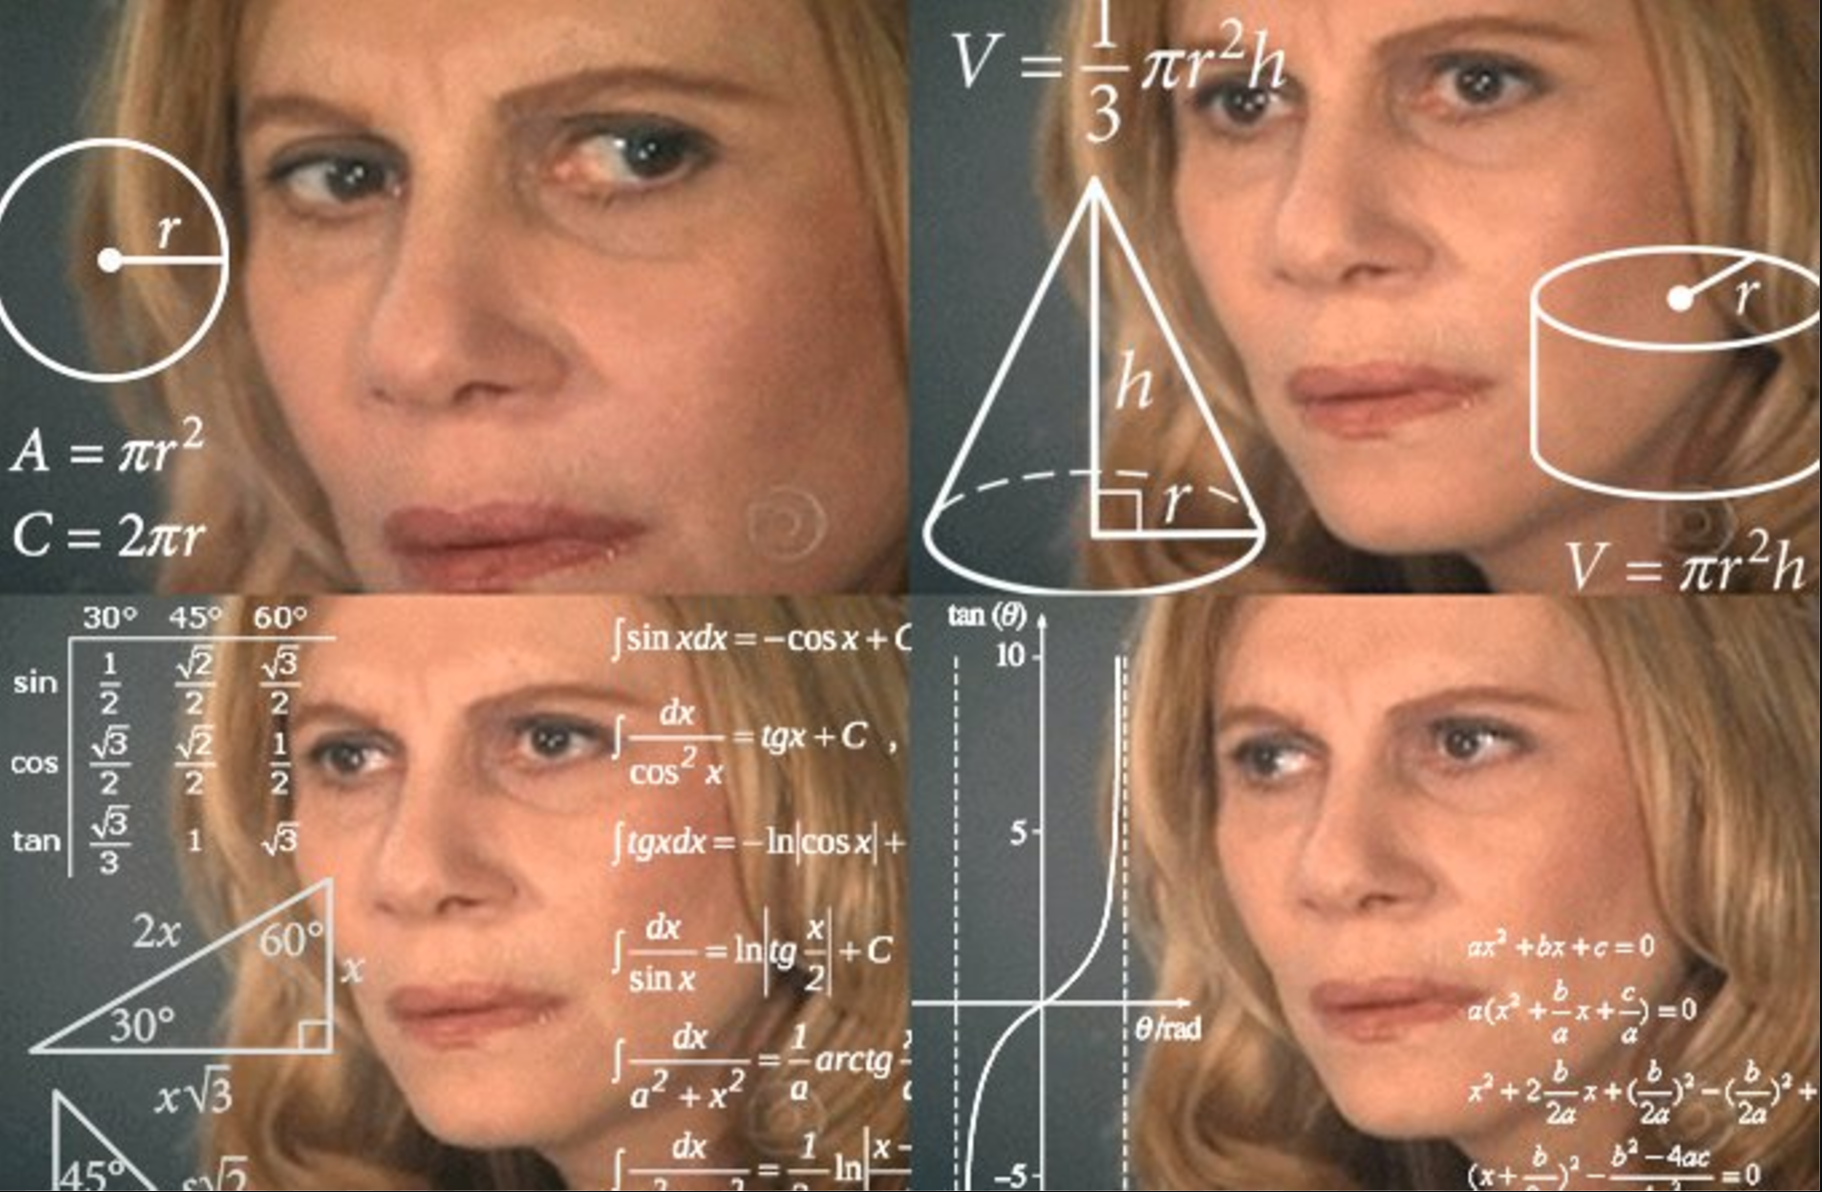 630 confused blonde lady math lady template math lady confused